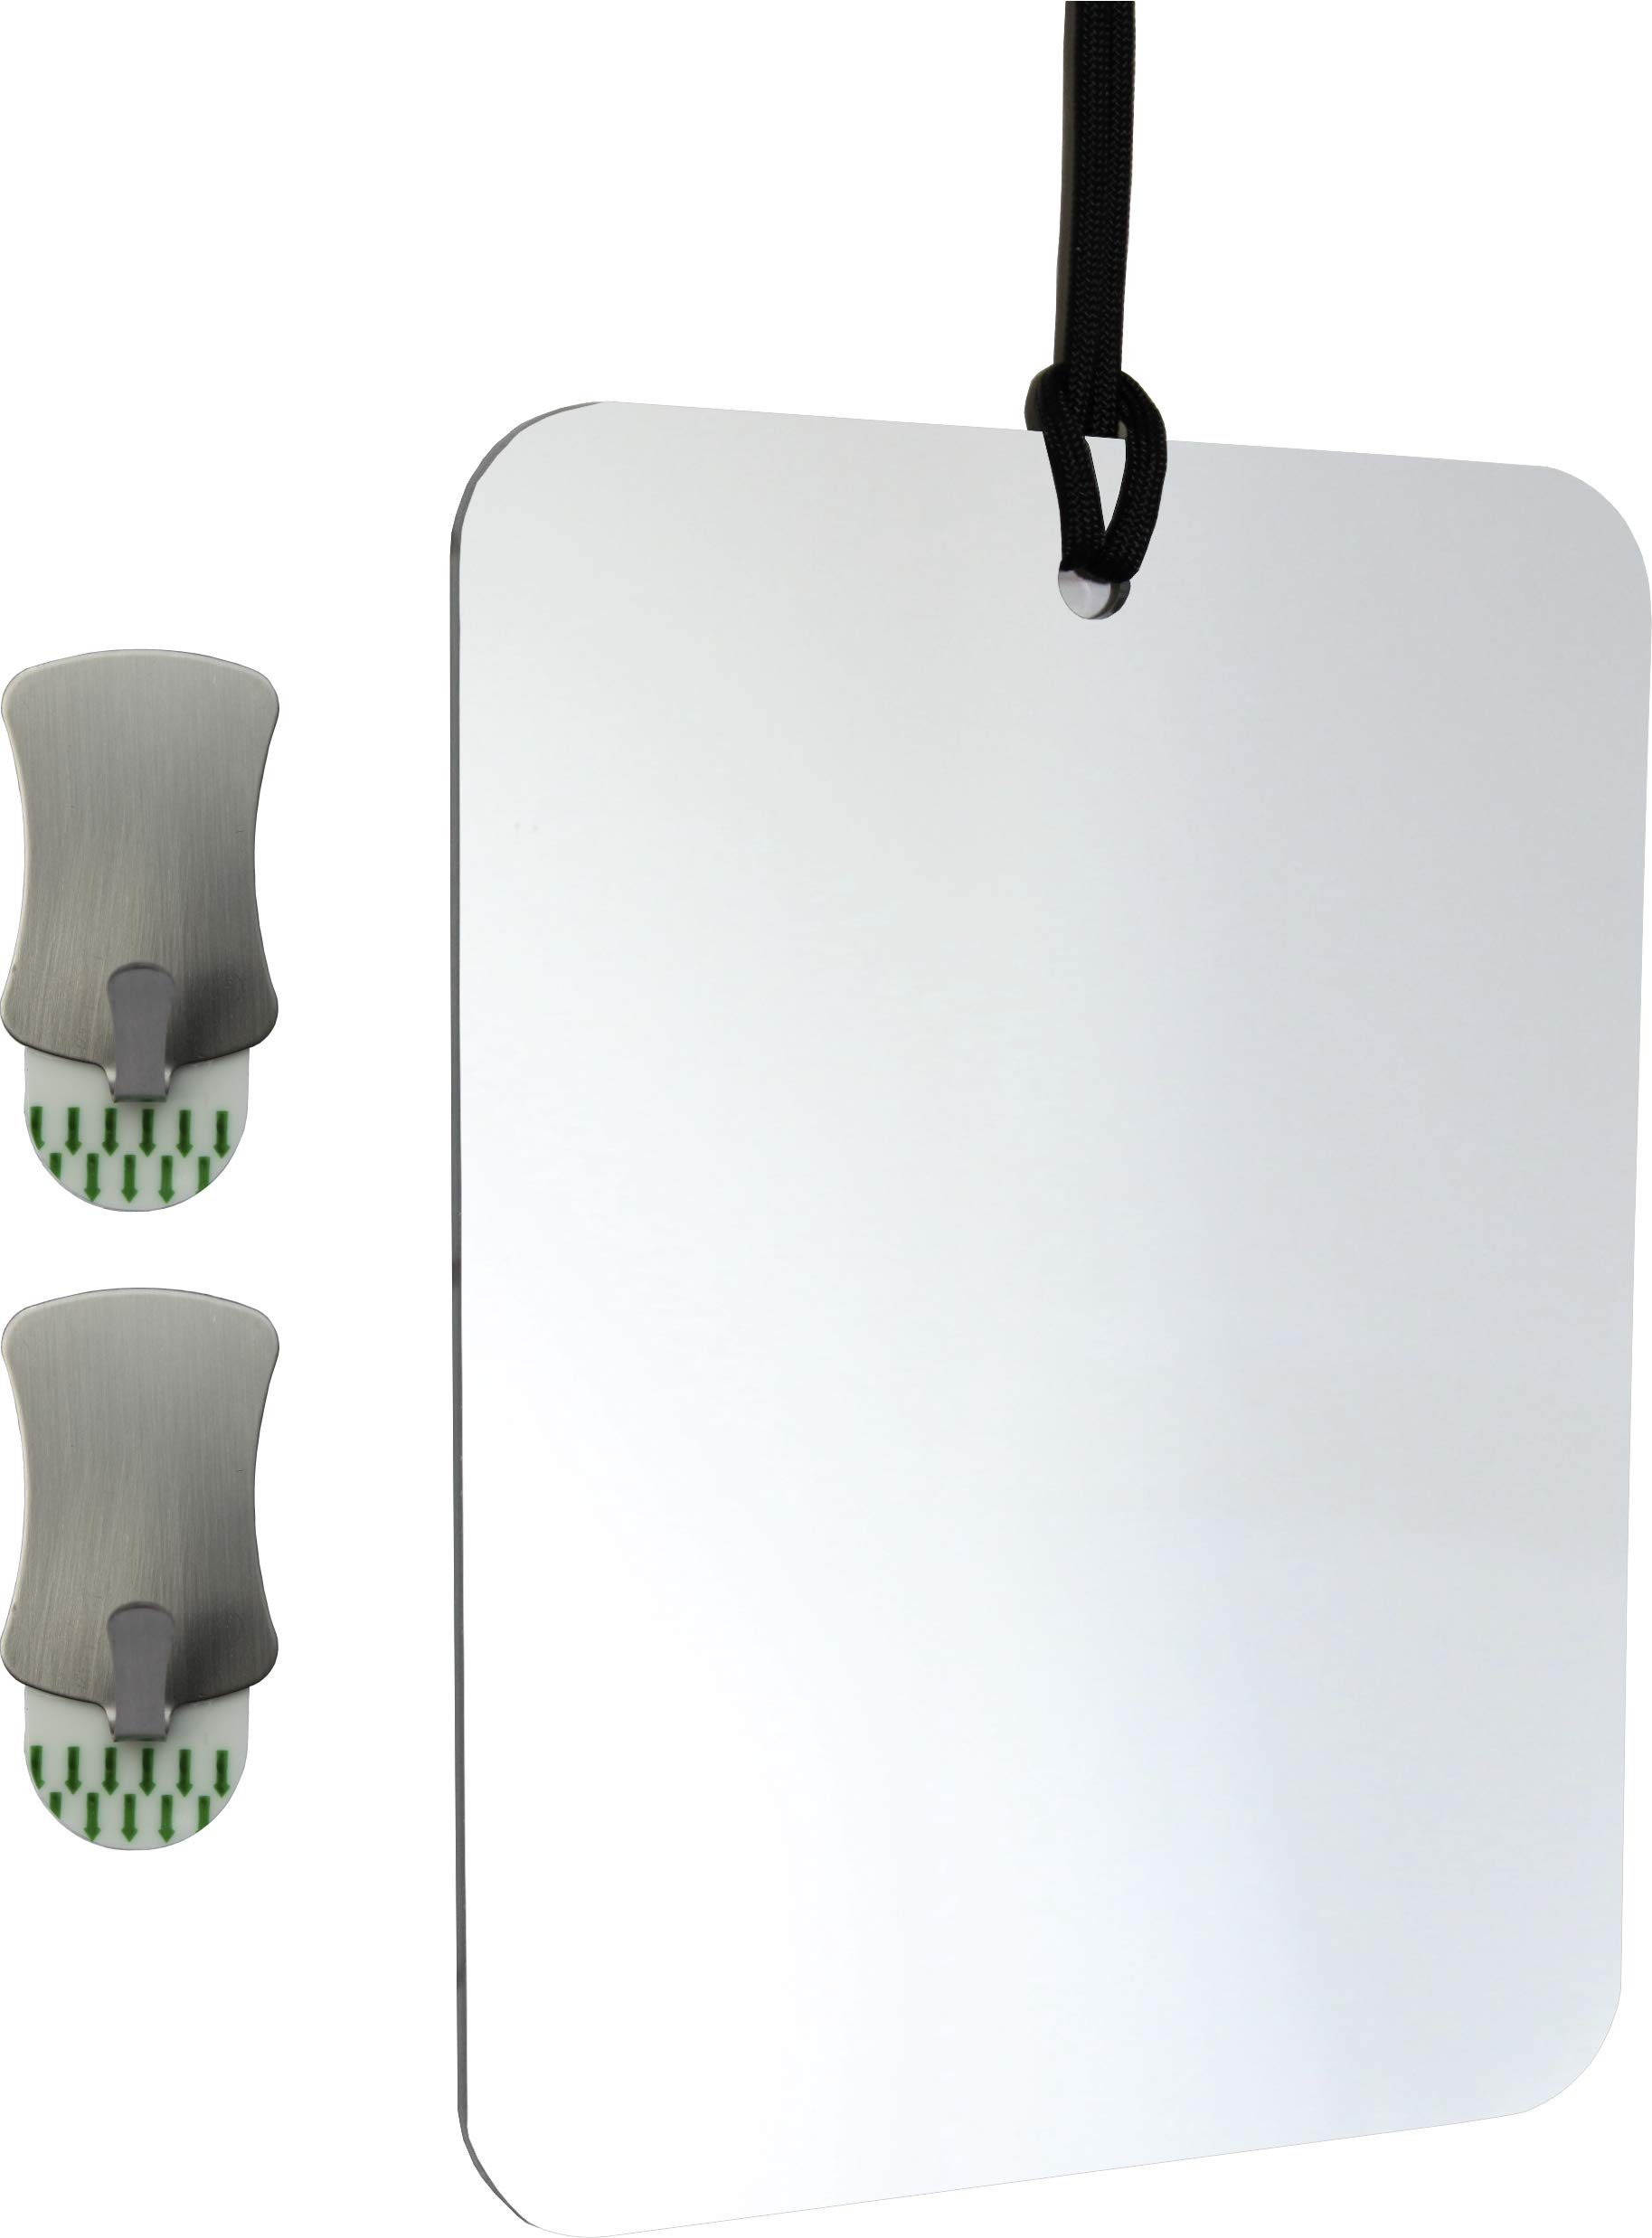 ReflectXL Shower Mirror - Use Shower Water Heat, Not Short Lived Coatings, to Repel Fog For 100% Reliability - Shatterproof - Easily Eliminate Fog and Shadows for a Clear Fogless Reflection (Unclad) by Mirror On A Rope